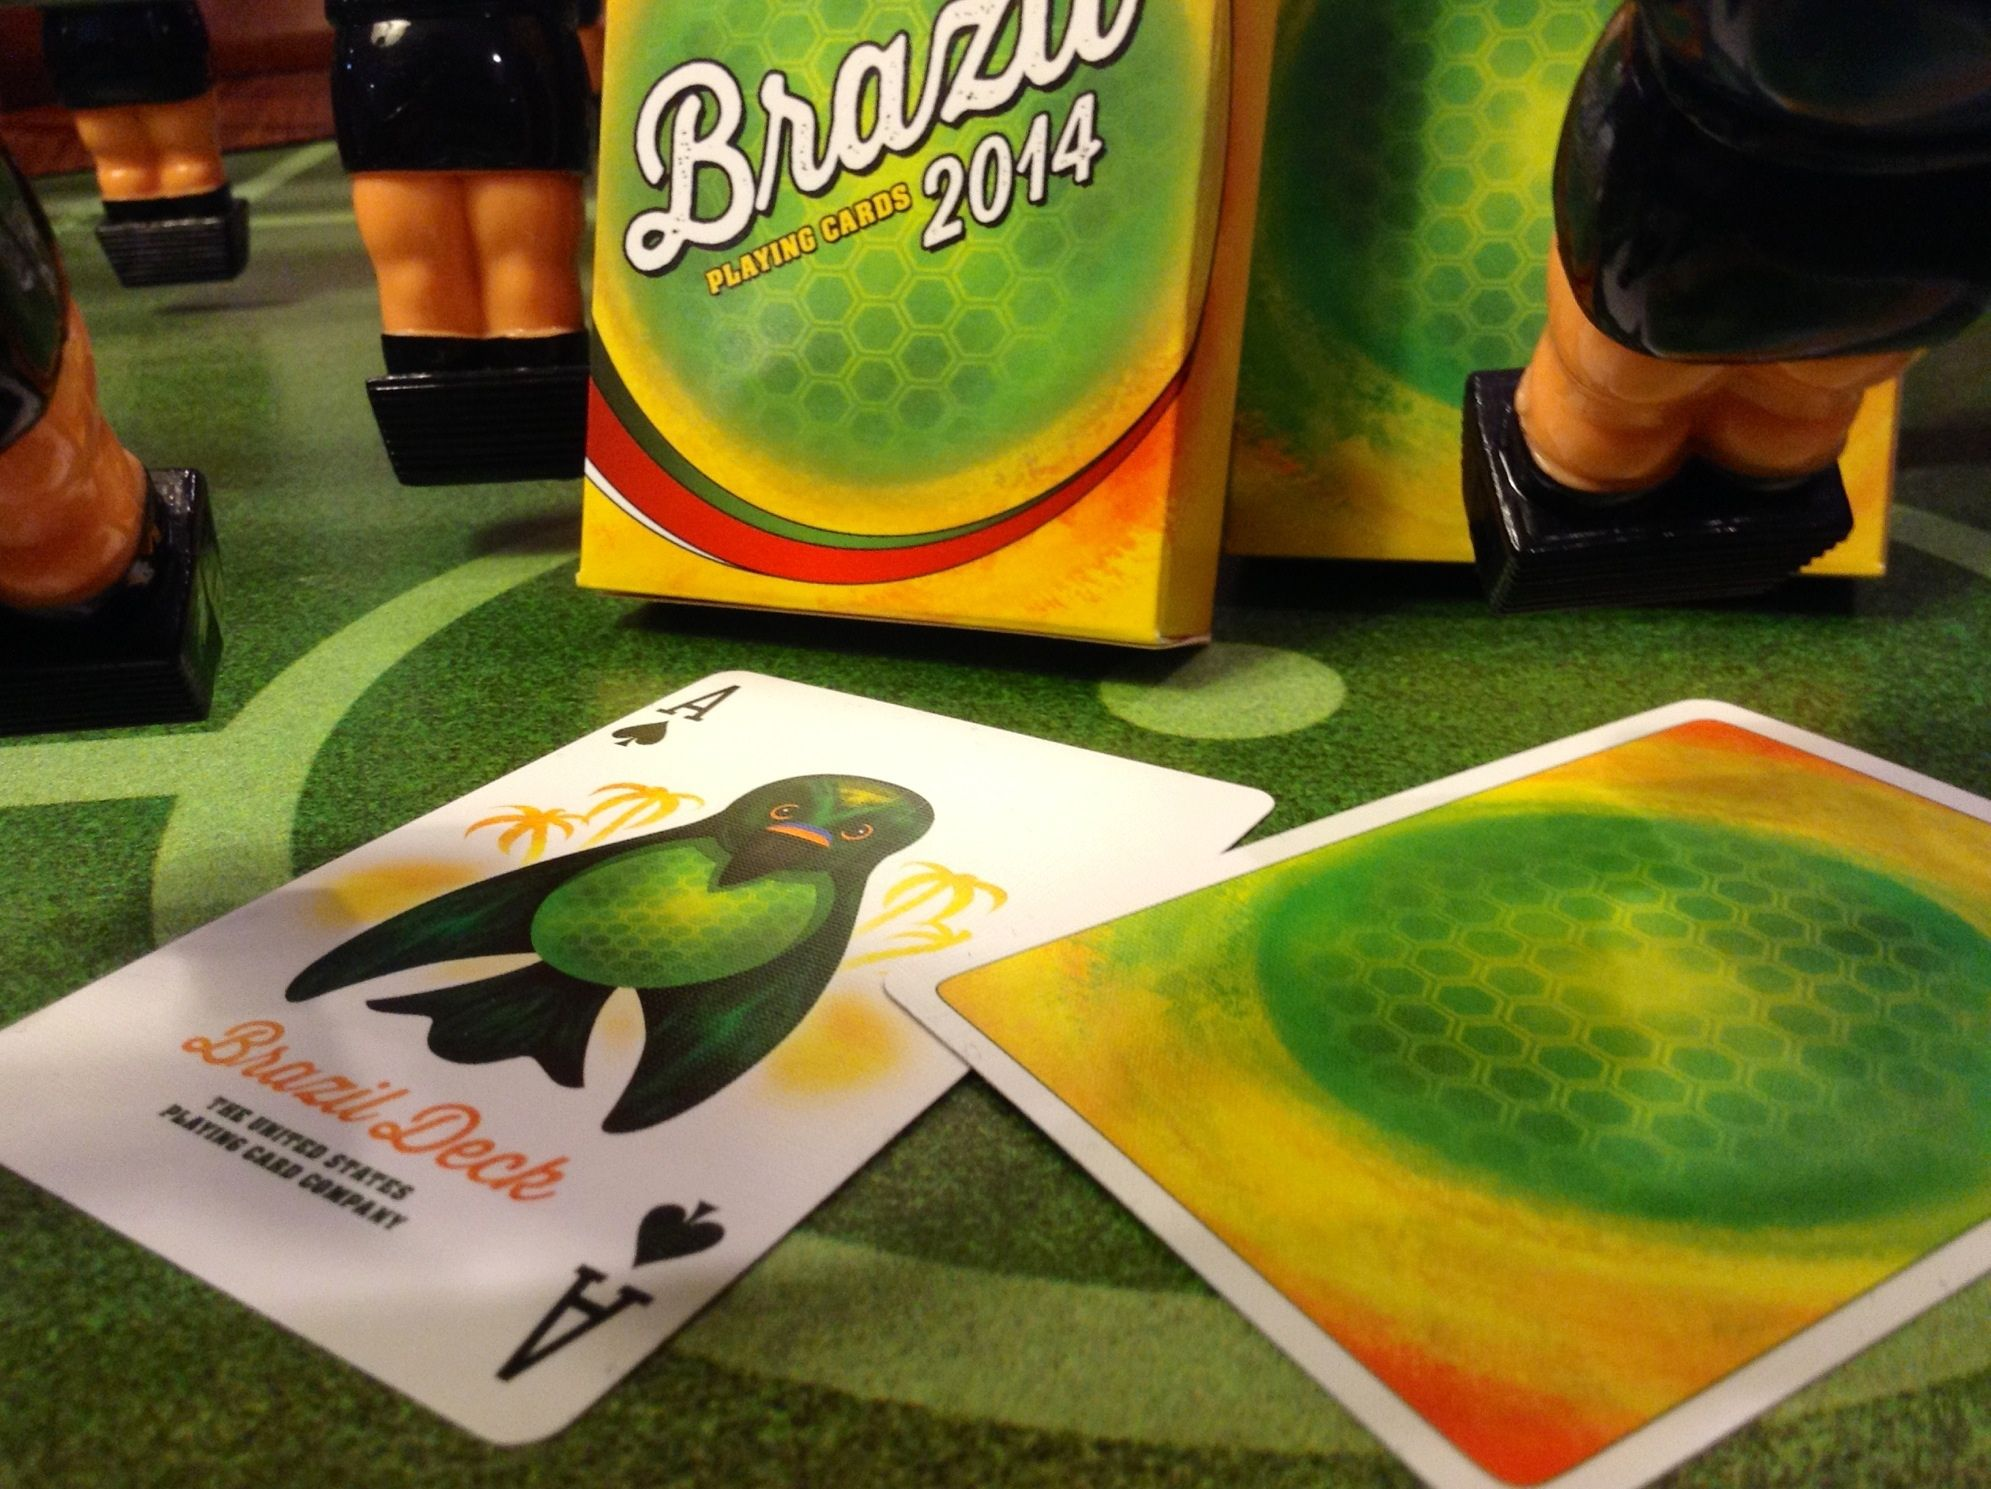 Brazil 2014 Commemorative Playing Cards